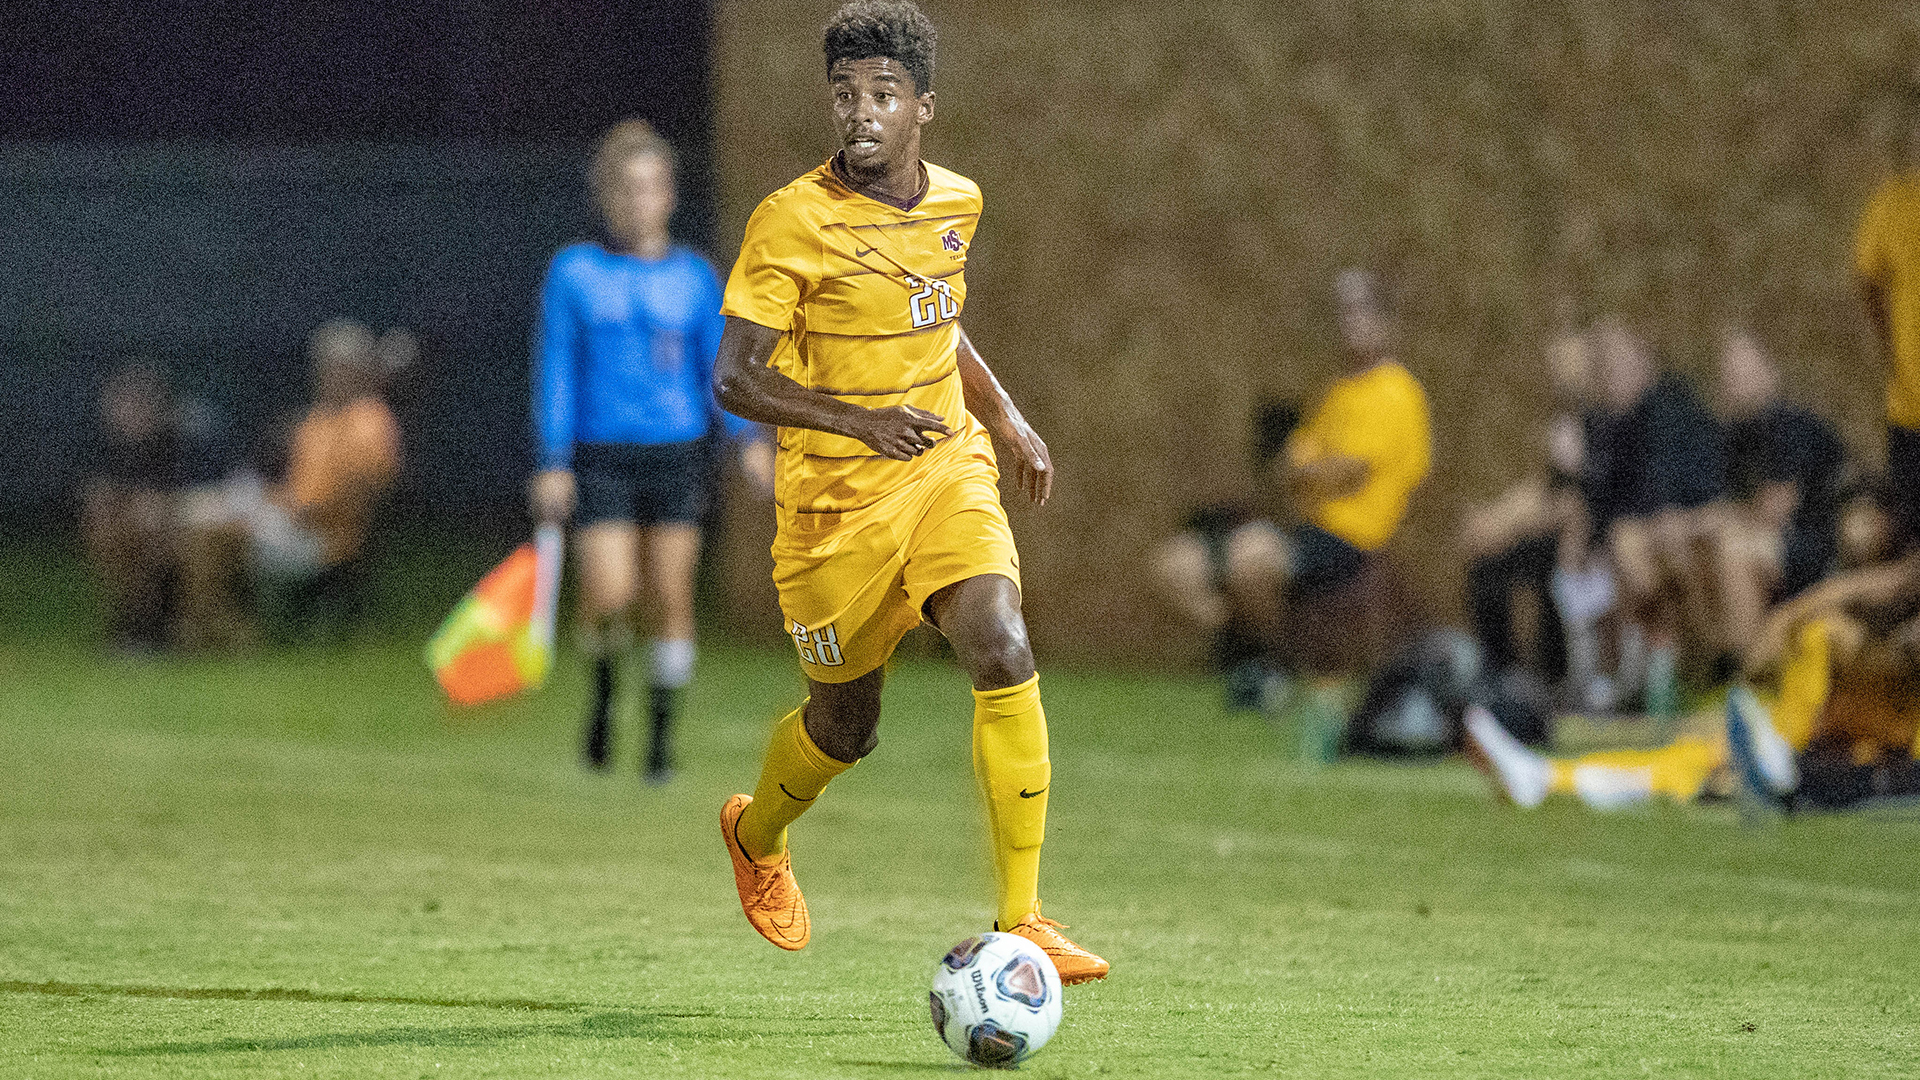 Two-goal night for Leme highlights 3-1 win for - MSU Athletics